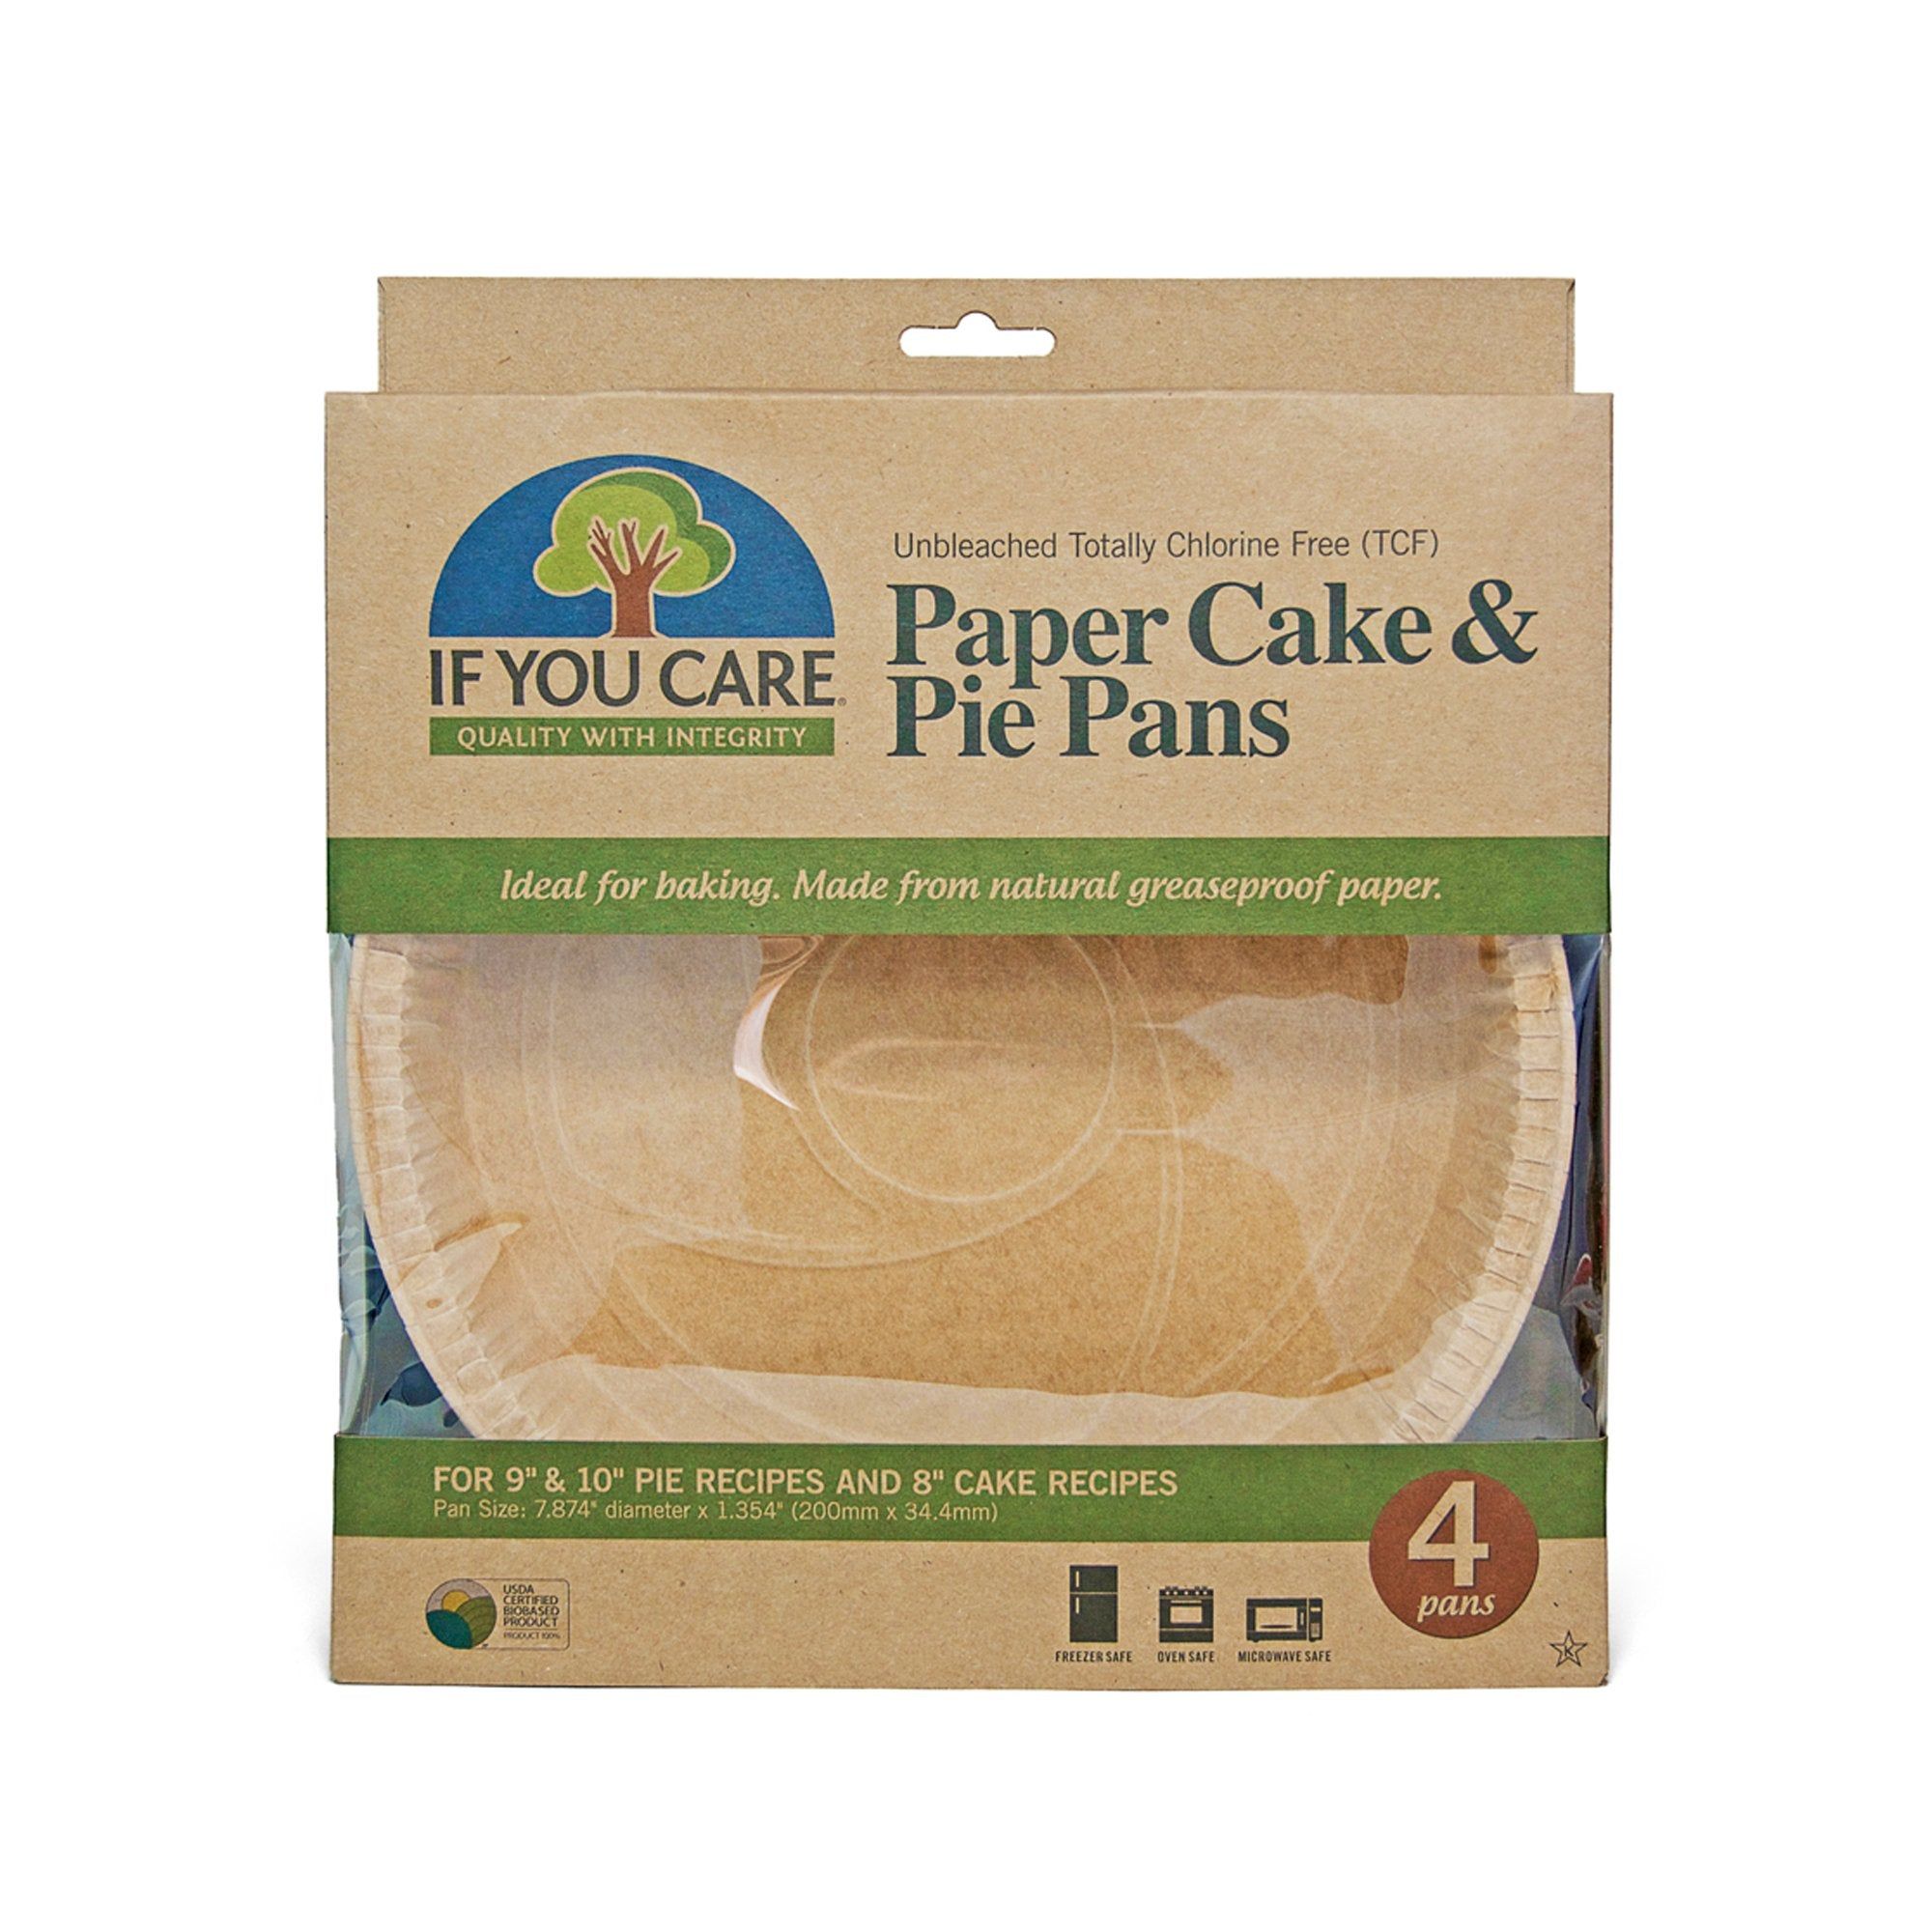 4 If You Care Paper Cake/Pie Pans in package. 9″ & 10″ pies and 8″ cake recipes